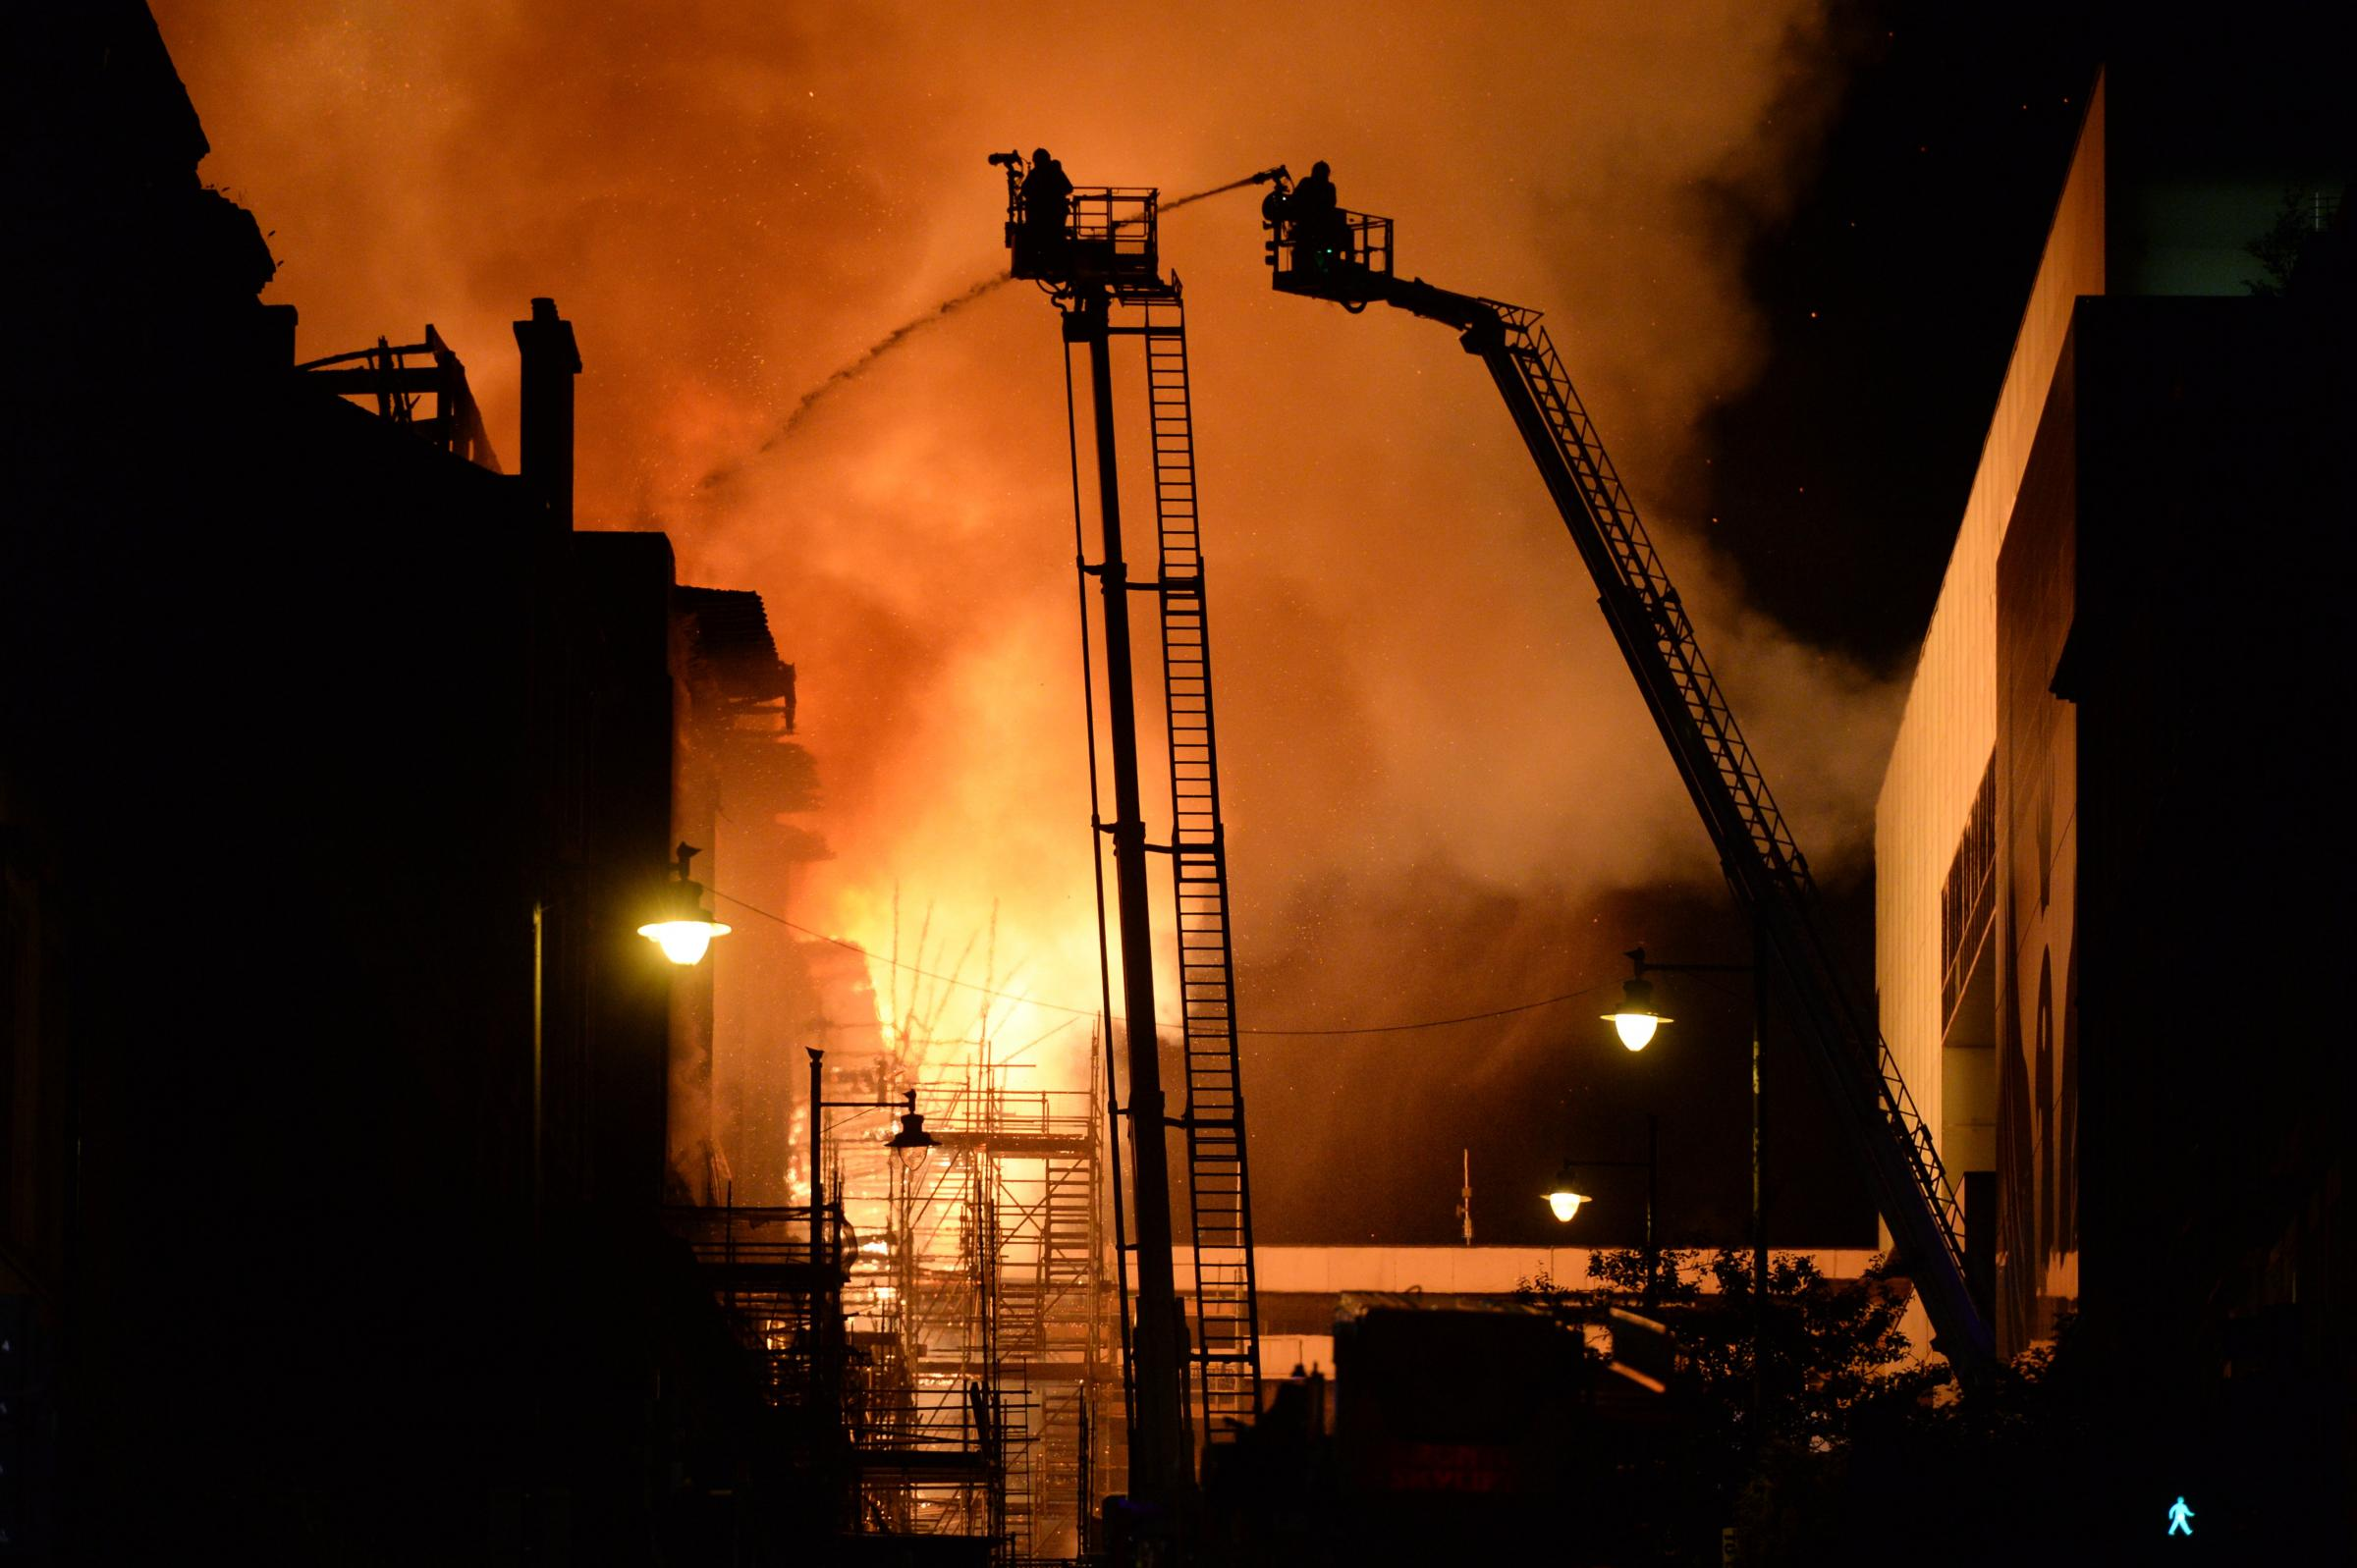 Experts reject Glasgow School of Art claims over second blaze